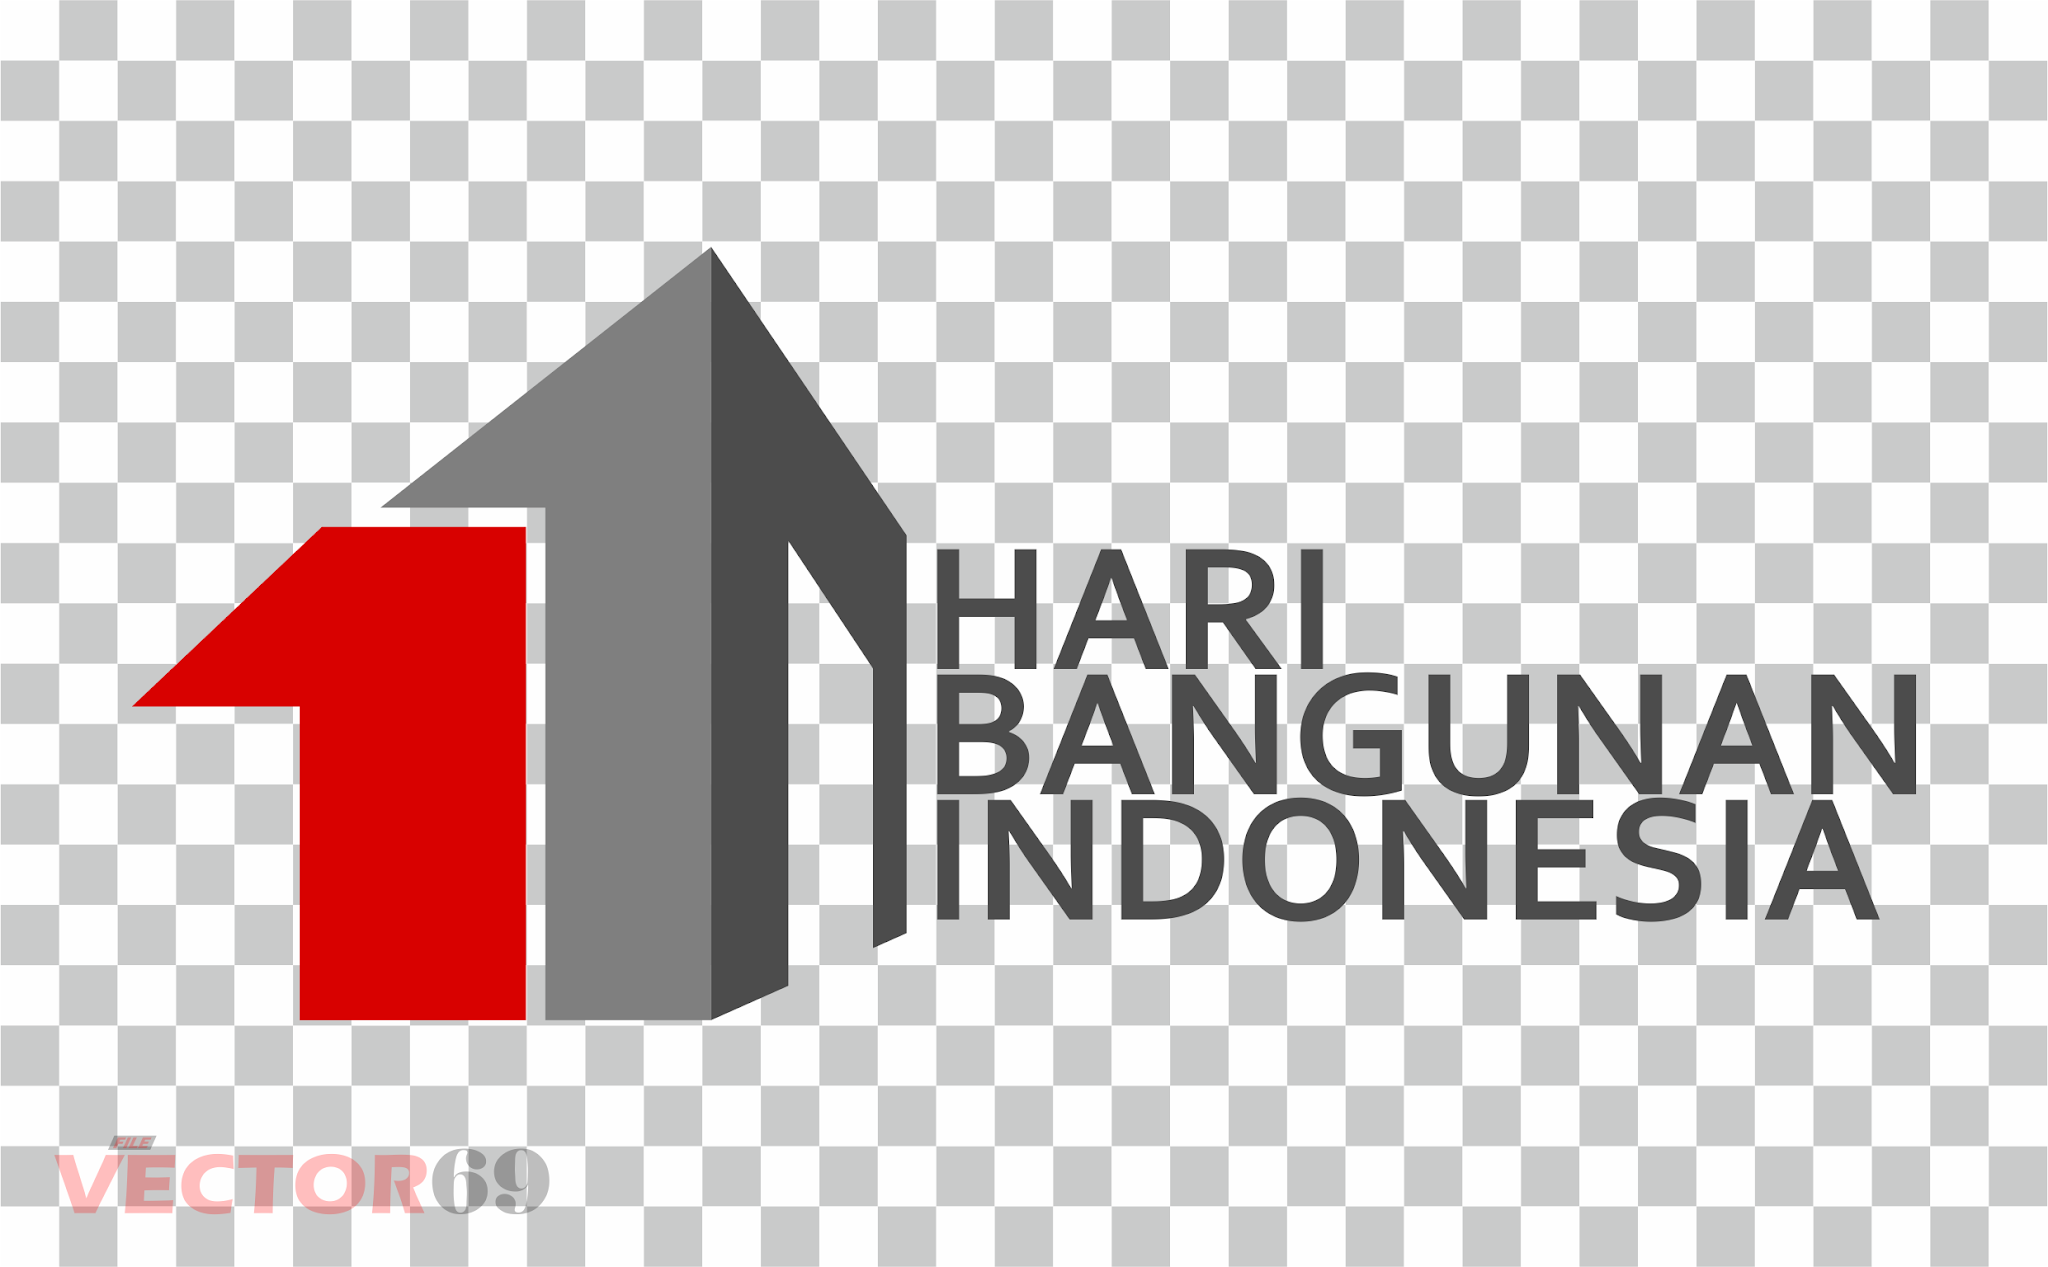 Hari Bangunan Indonesia Logo - Download Vector File PNG (Portable Network Graphics)